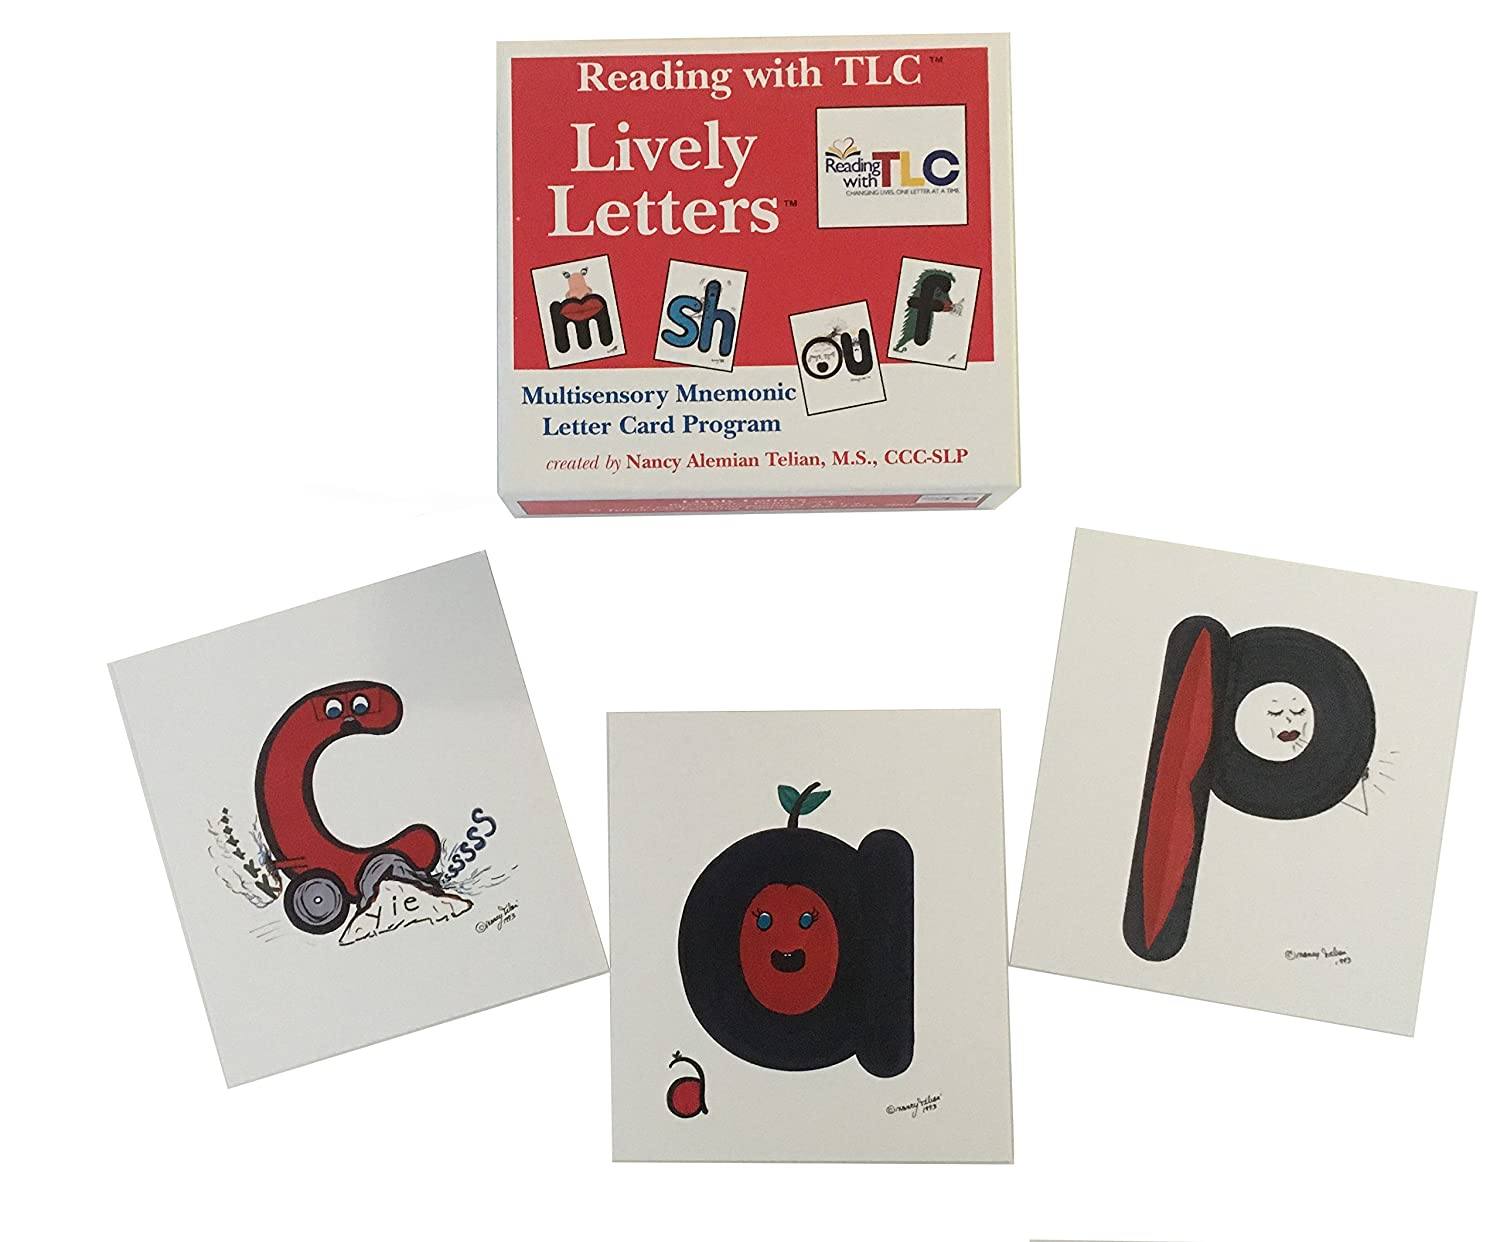 amazon com reading with tlc lively letters boxed cards reading